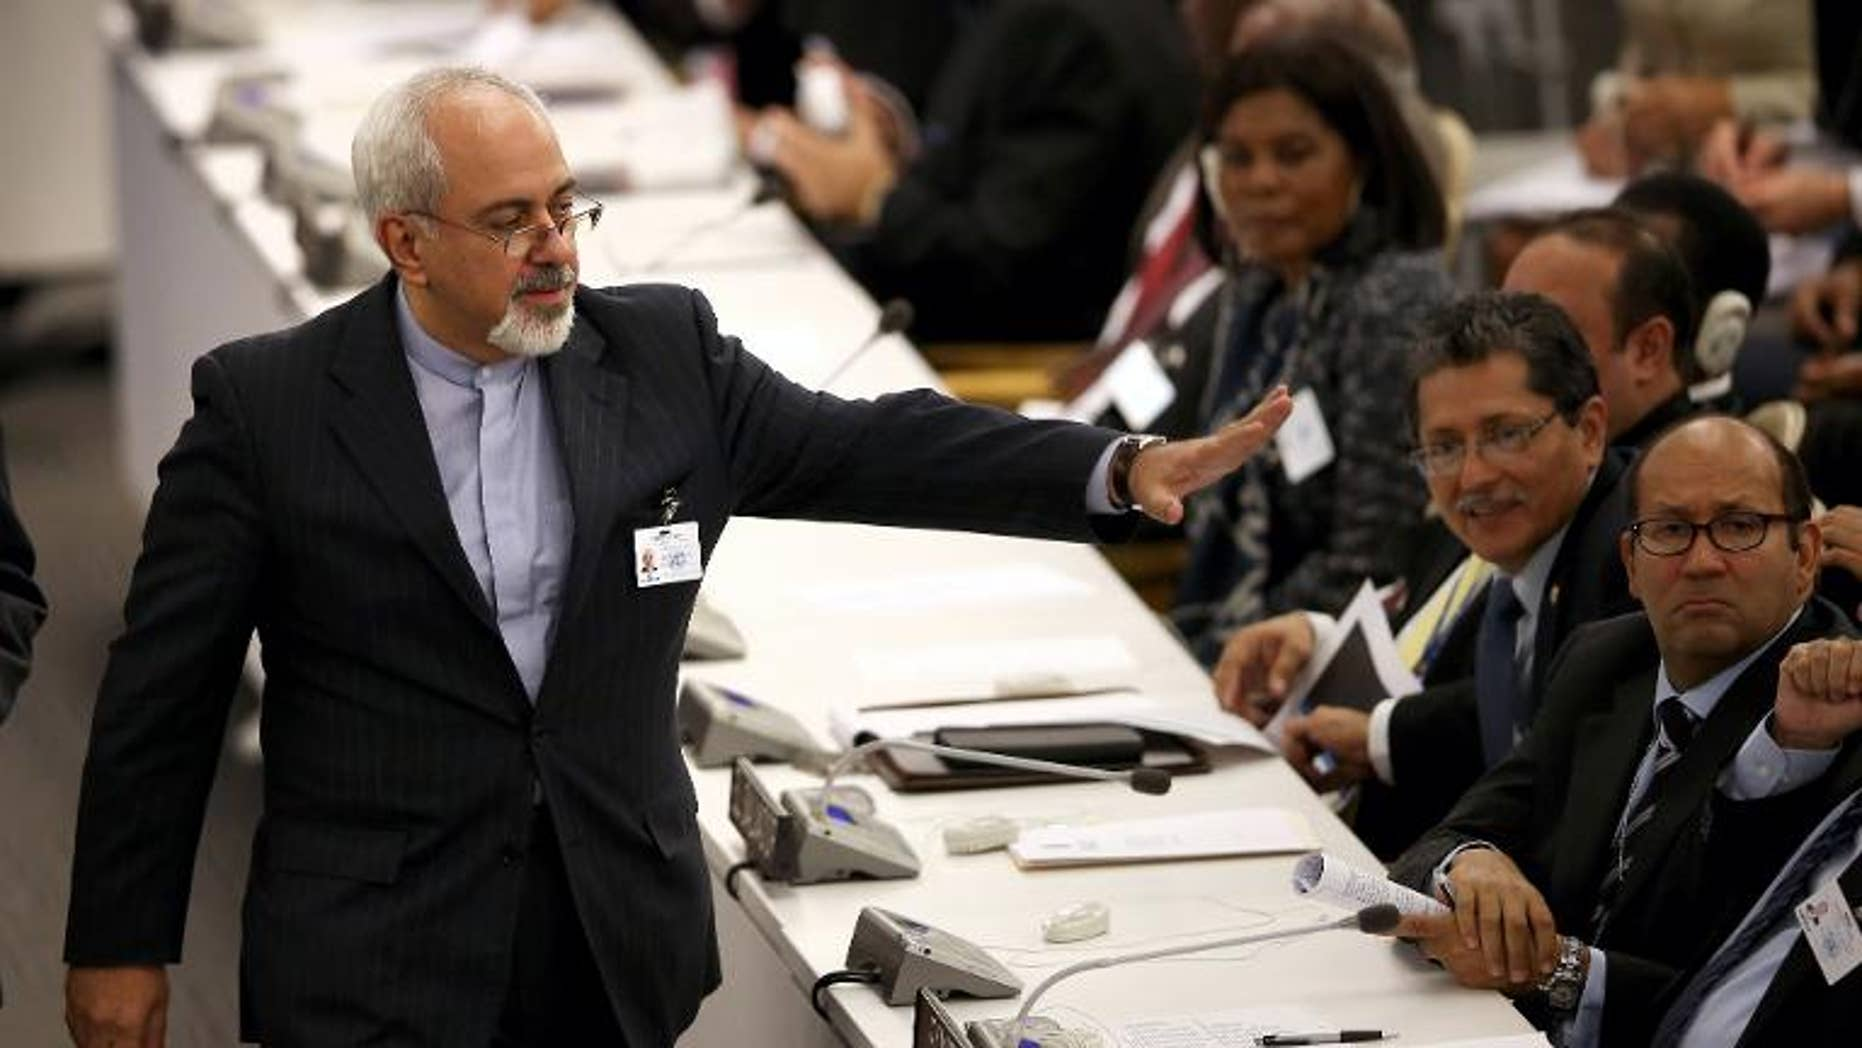 Iranian Foreign Minister Mohammad Javad Zarif greets fellow diplomats after listening to US President Barack Obama address the UN General Assembly on September 24, 2013 in New York